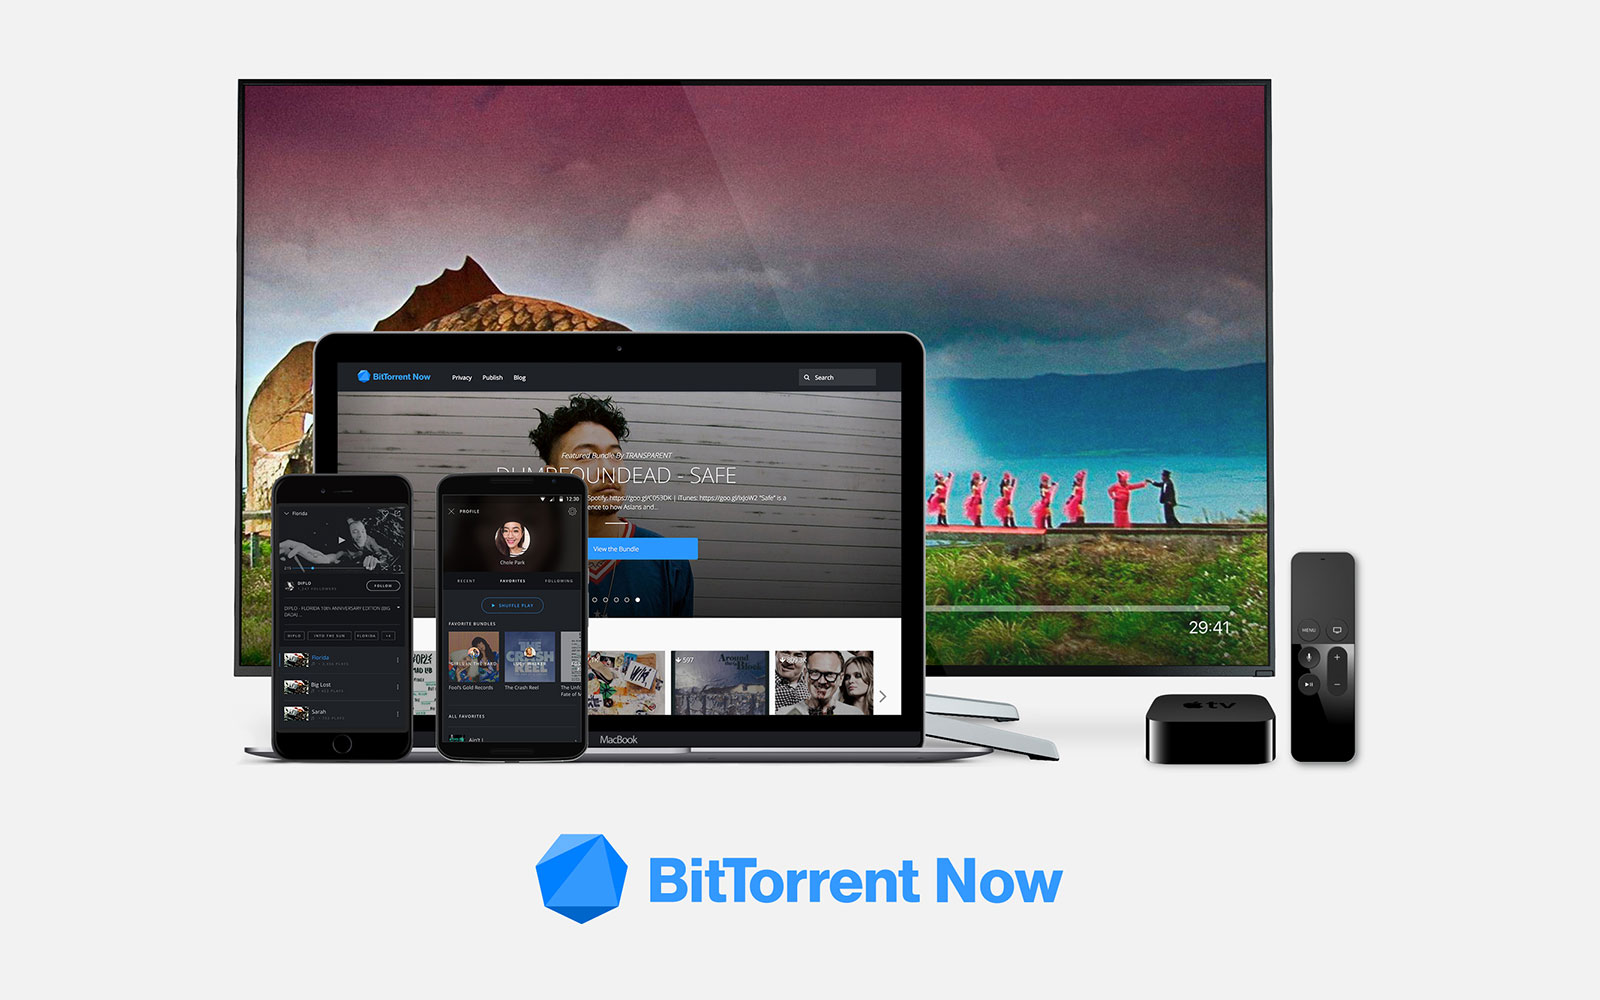 BitTorrent_Now_a